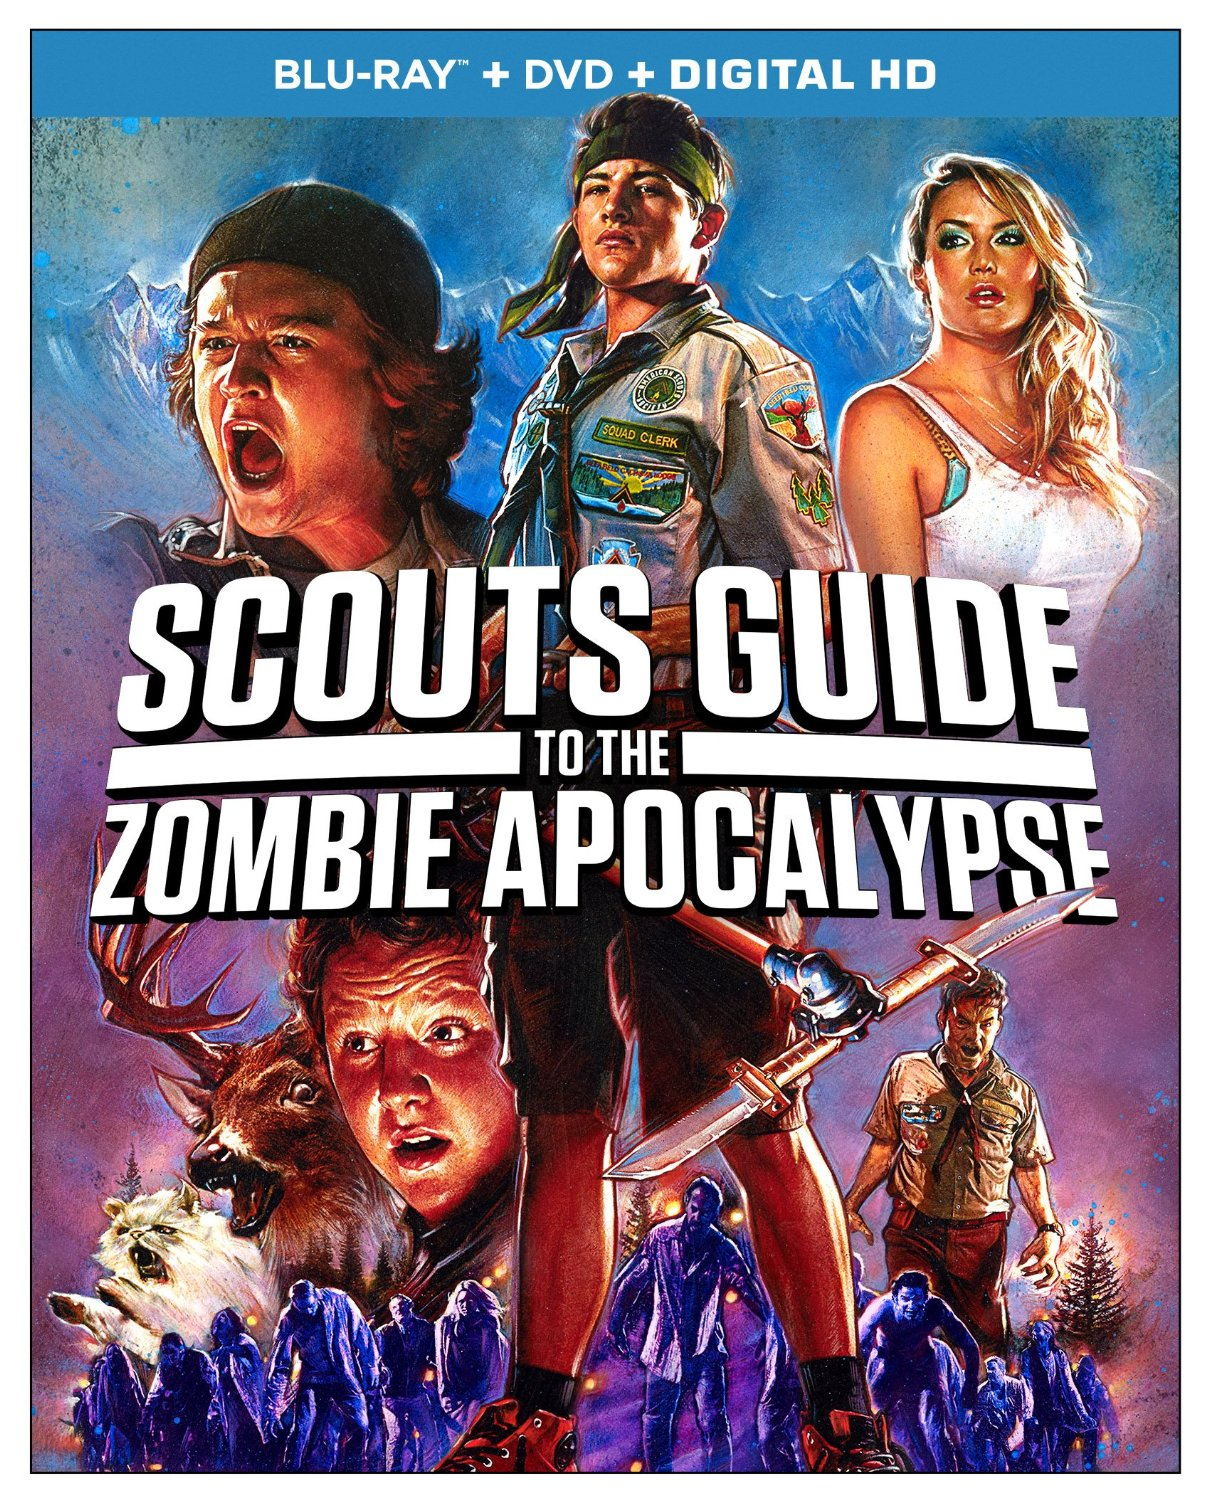 91riKvb7PPL. SL1500  Scouts Guide To the Zombie Apocalypse